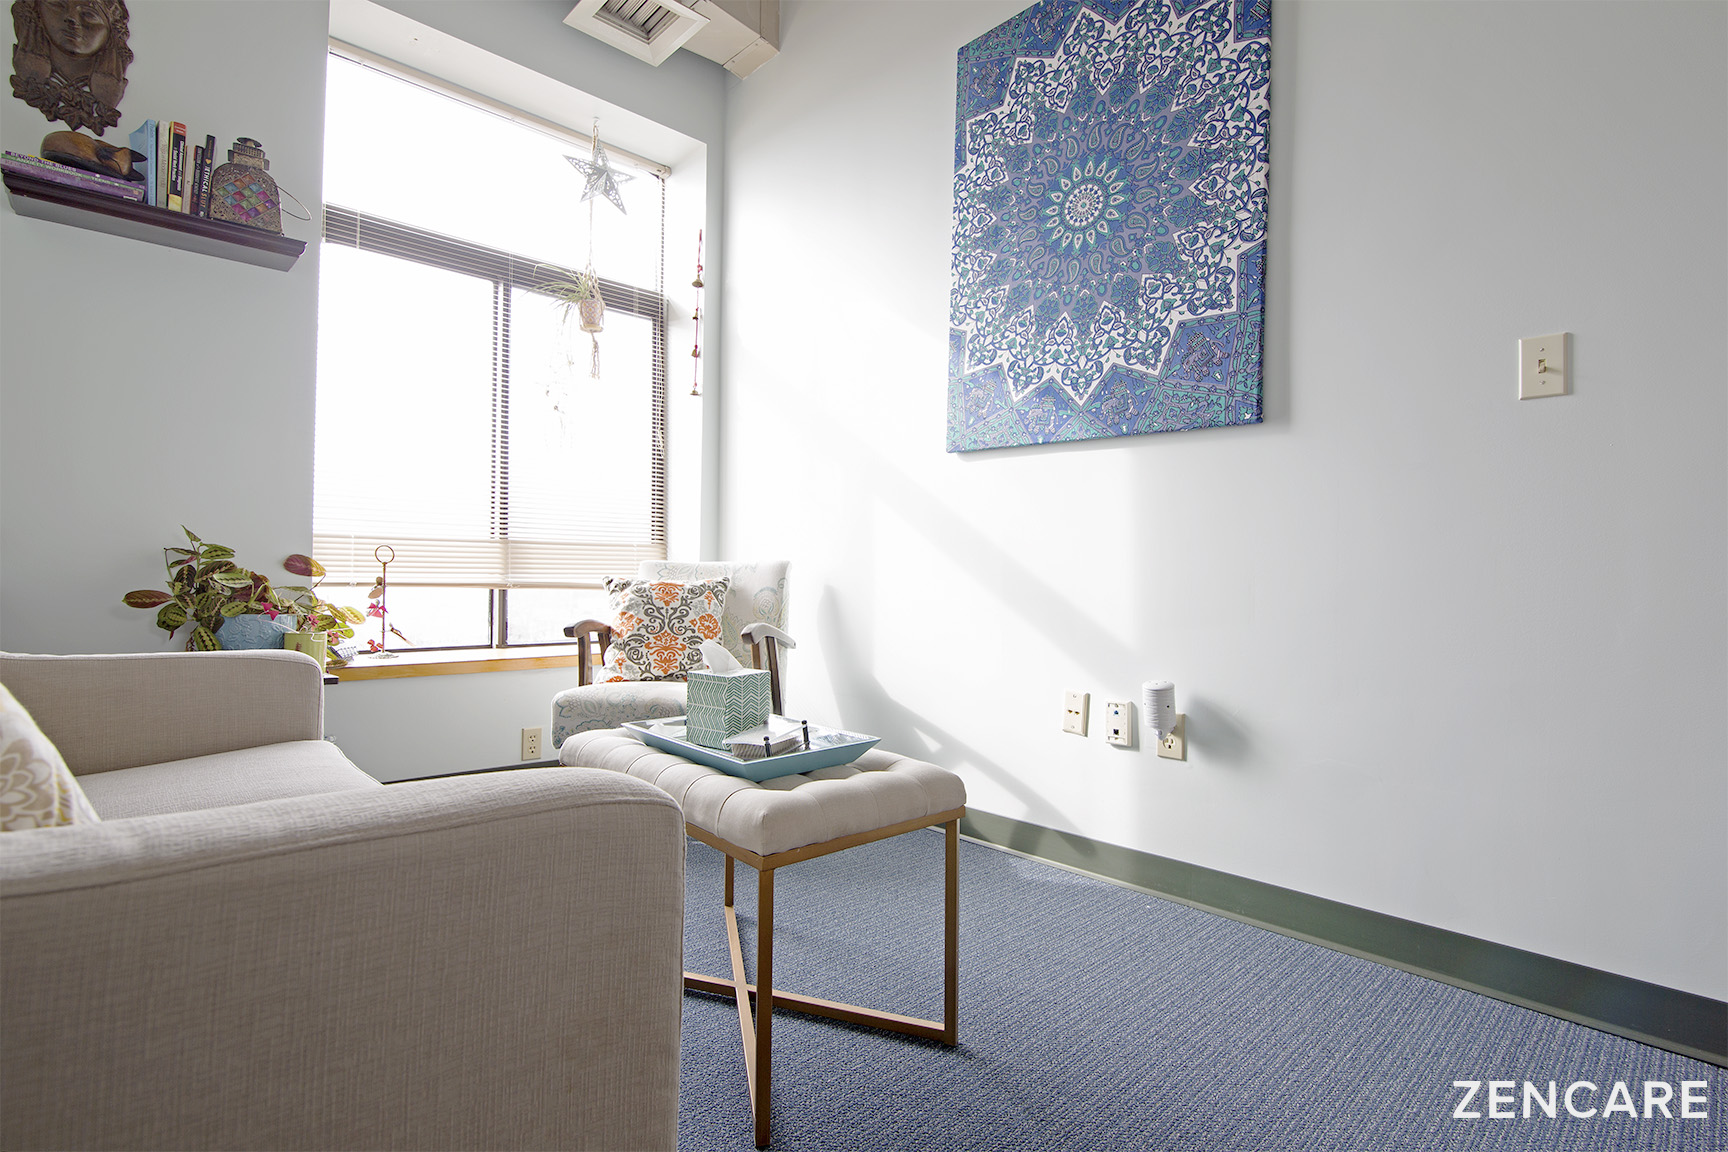 therapist office decor decorating 12 tips to spruce up your space